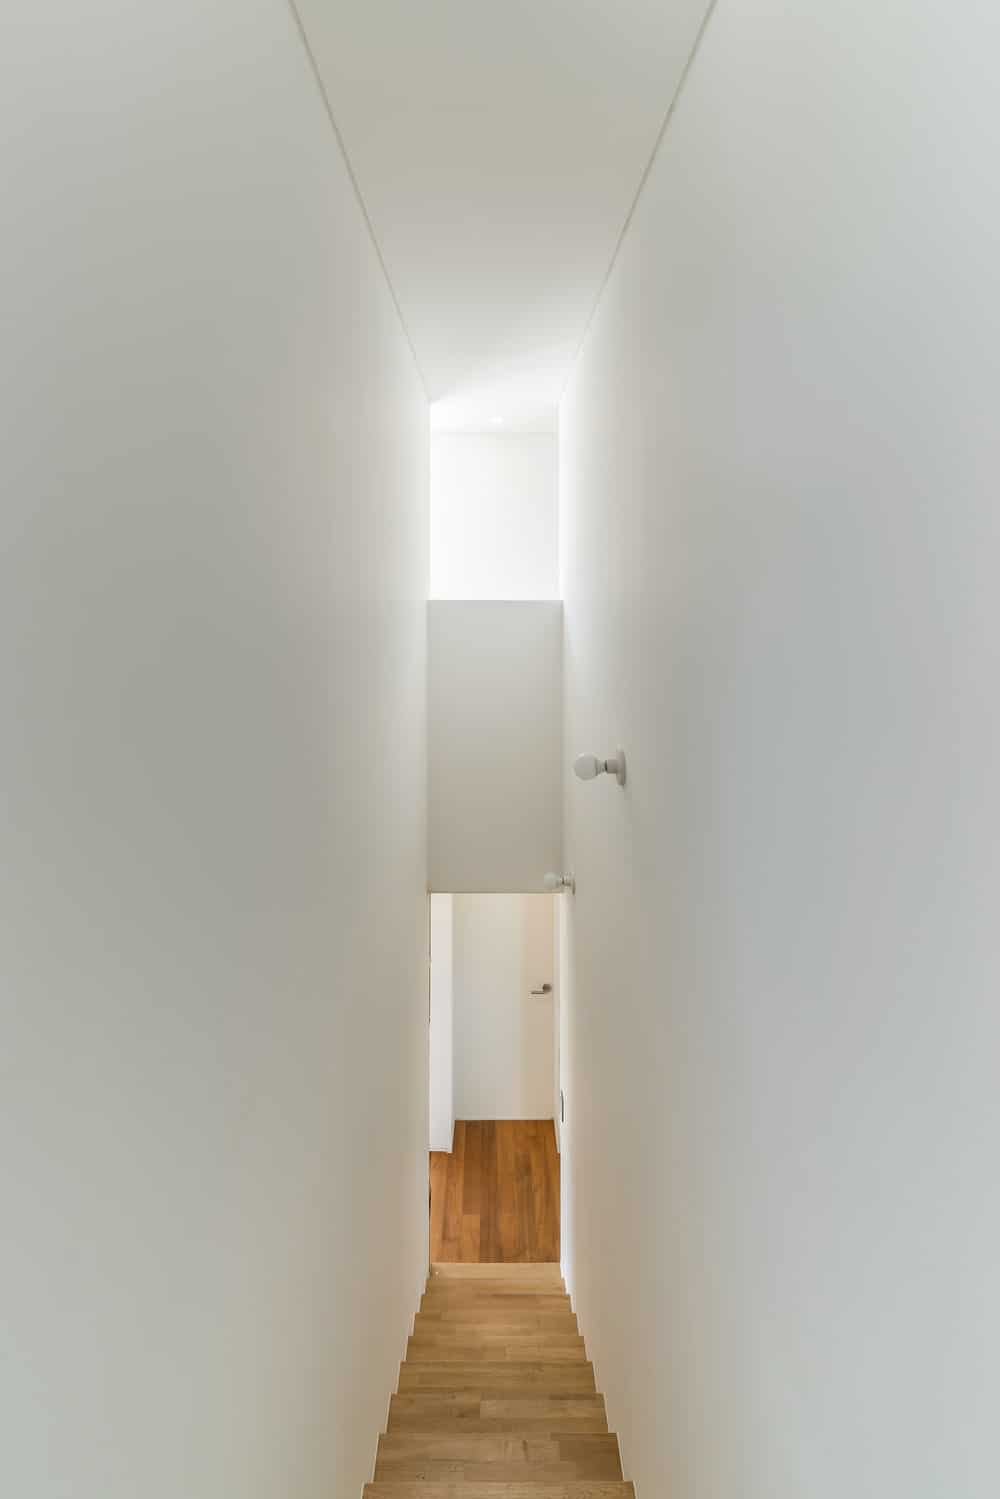 This is a look down the stairs that is lit with natural lighting from the transom window above.